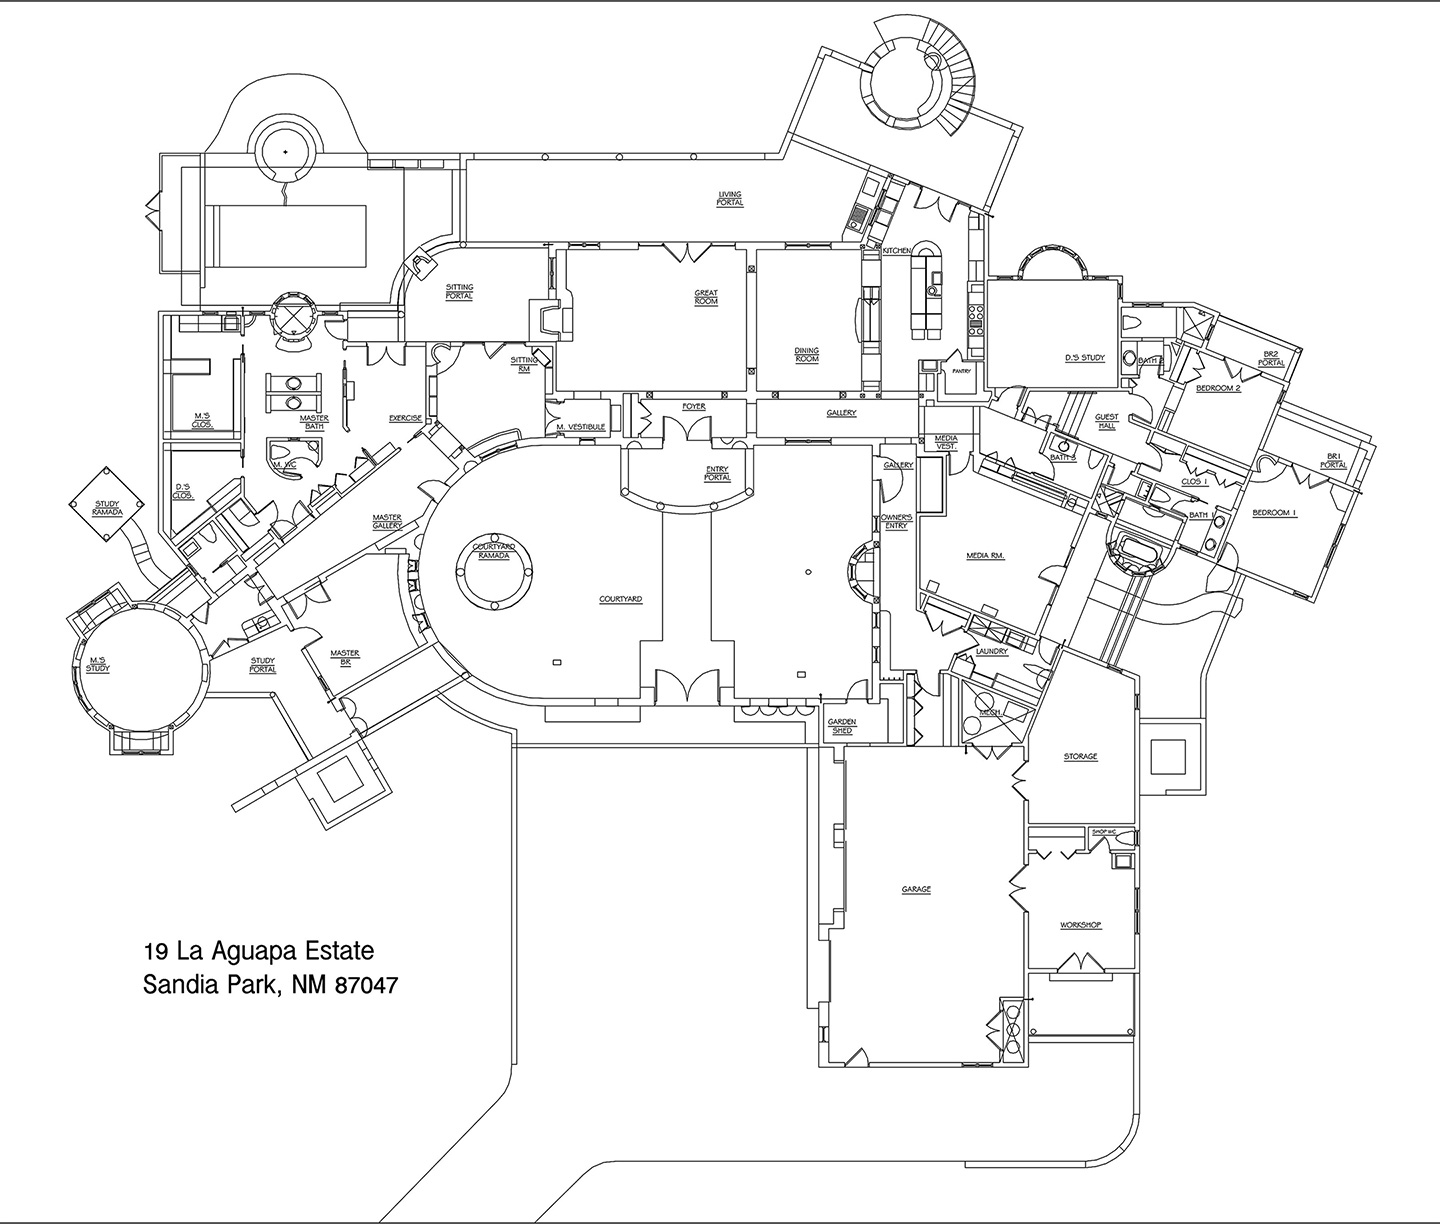 Dream house drawing at getdrawings free for personal use dream 1440x1224 custom dream house floor plans malvernweather Image collections